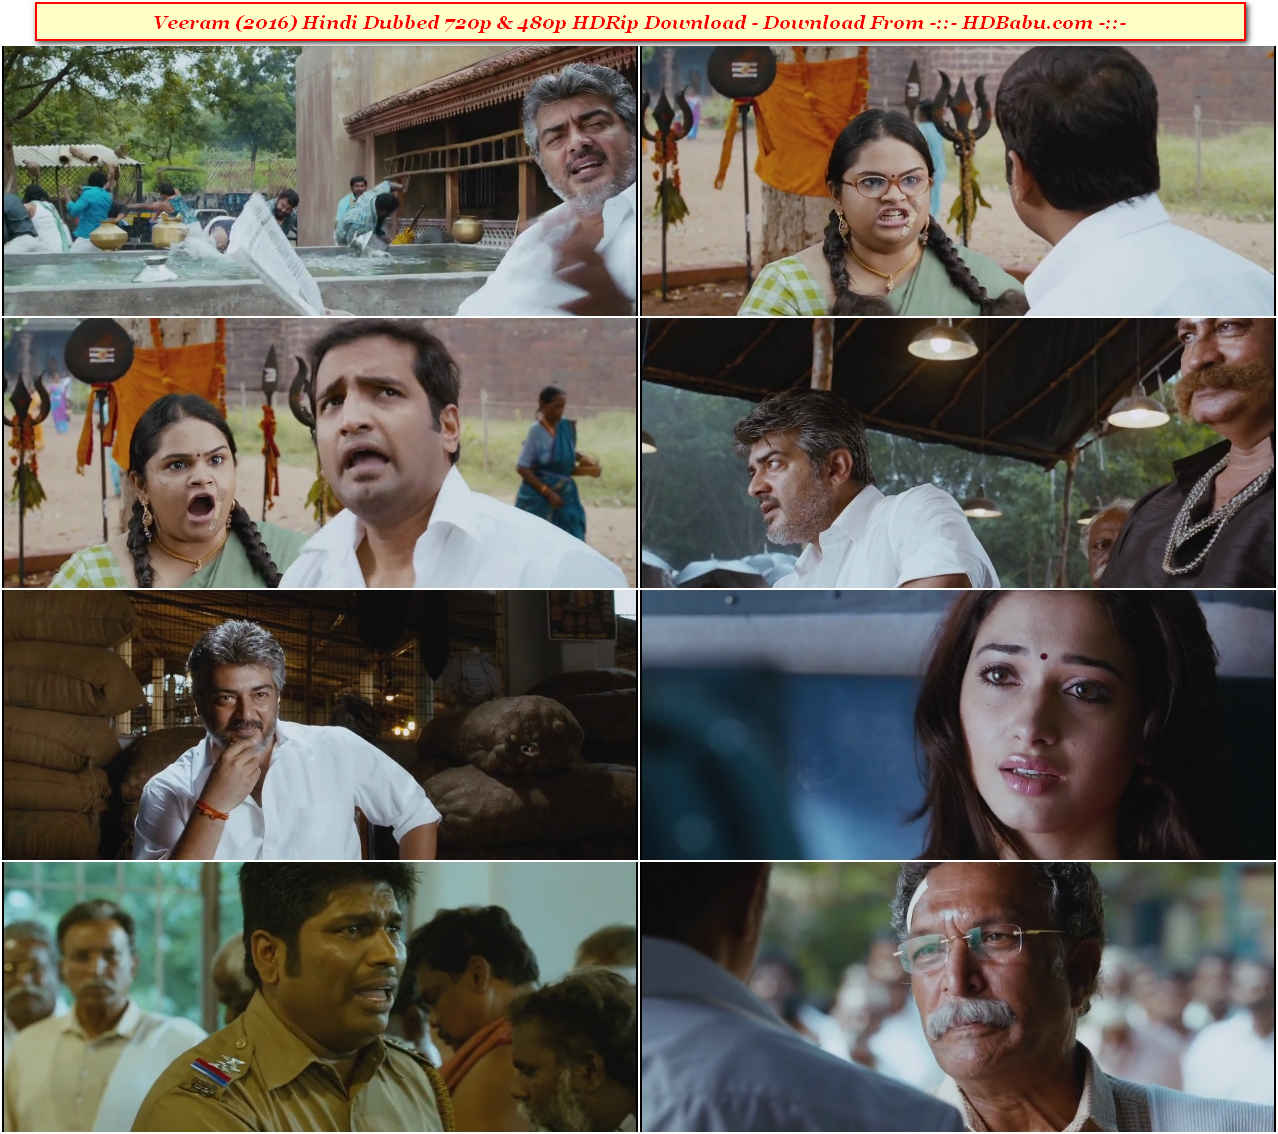 Veeram Hindi Dubbed Full Movie Download 720p & 480p Direct Download Link